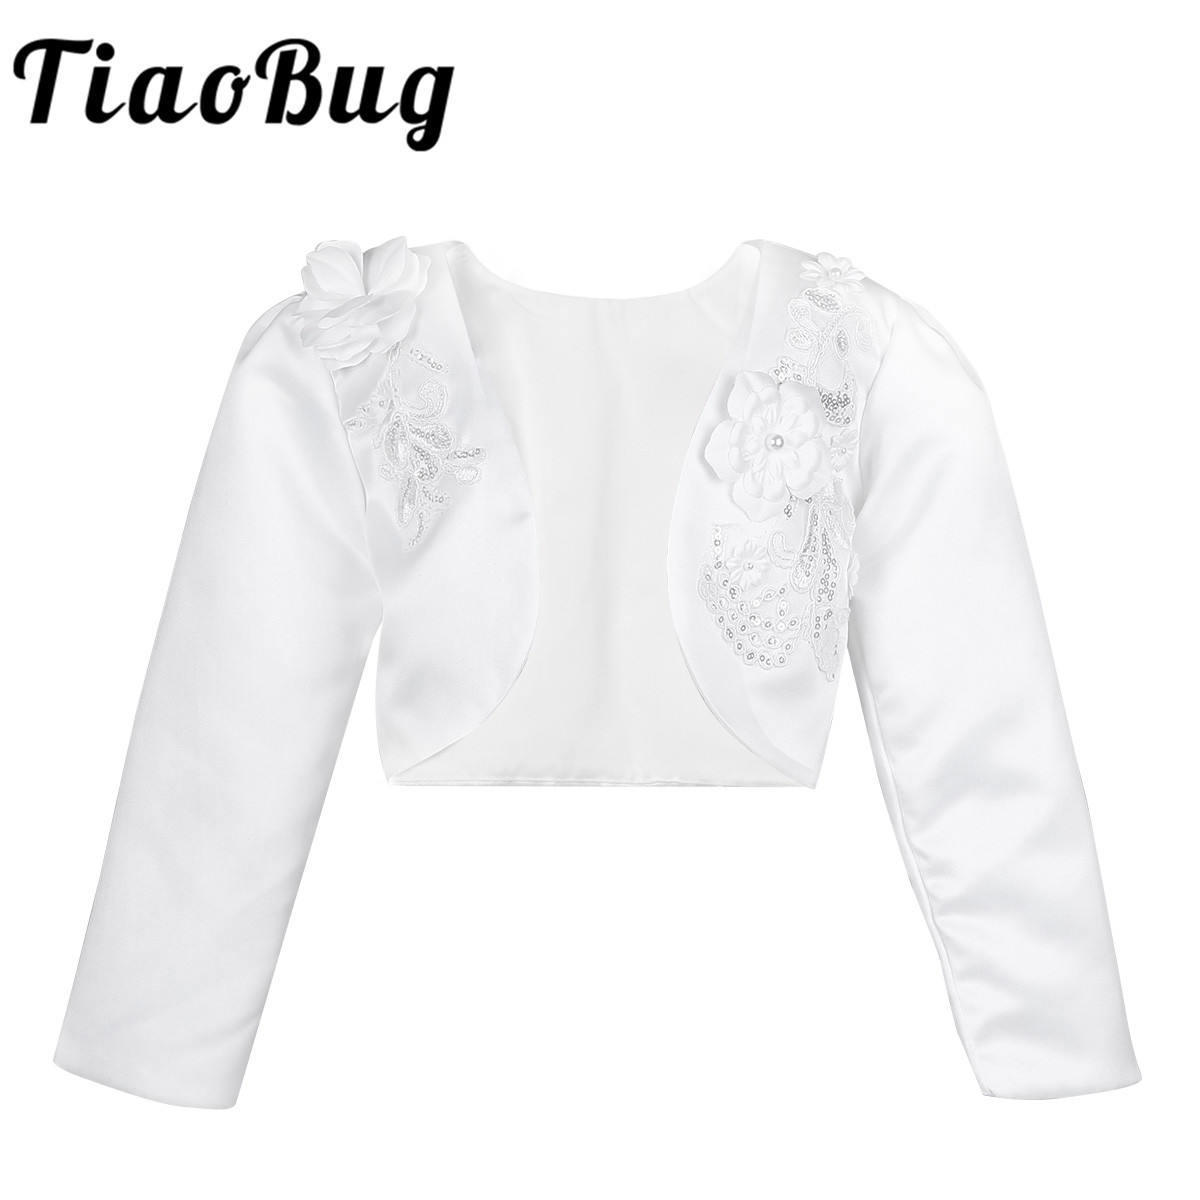 Flower Girls Bolero Shrug Short Cardigan for Bridesmaids Wedding Birthday Party